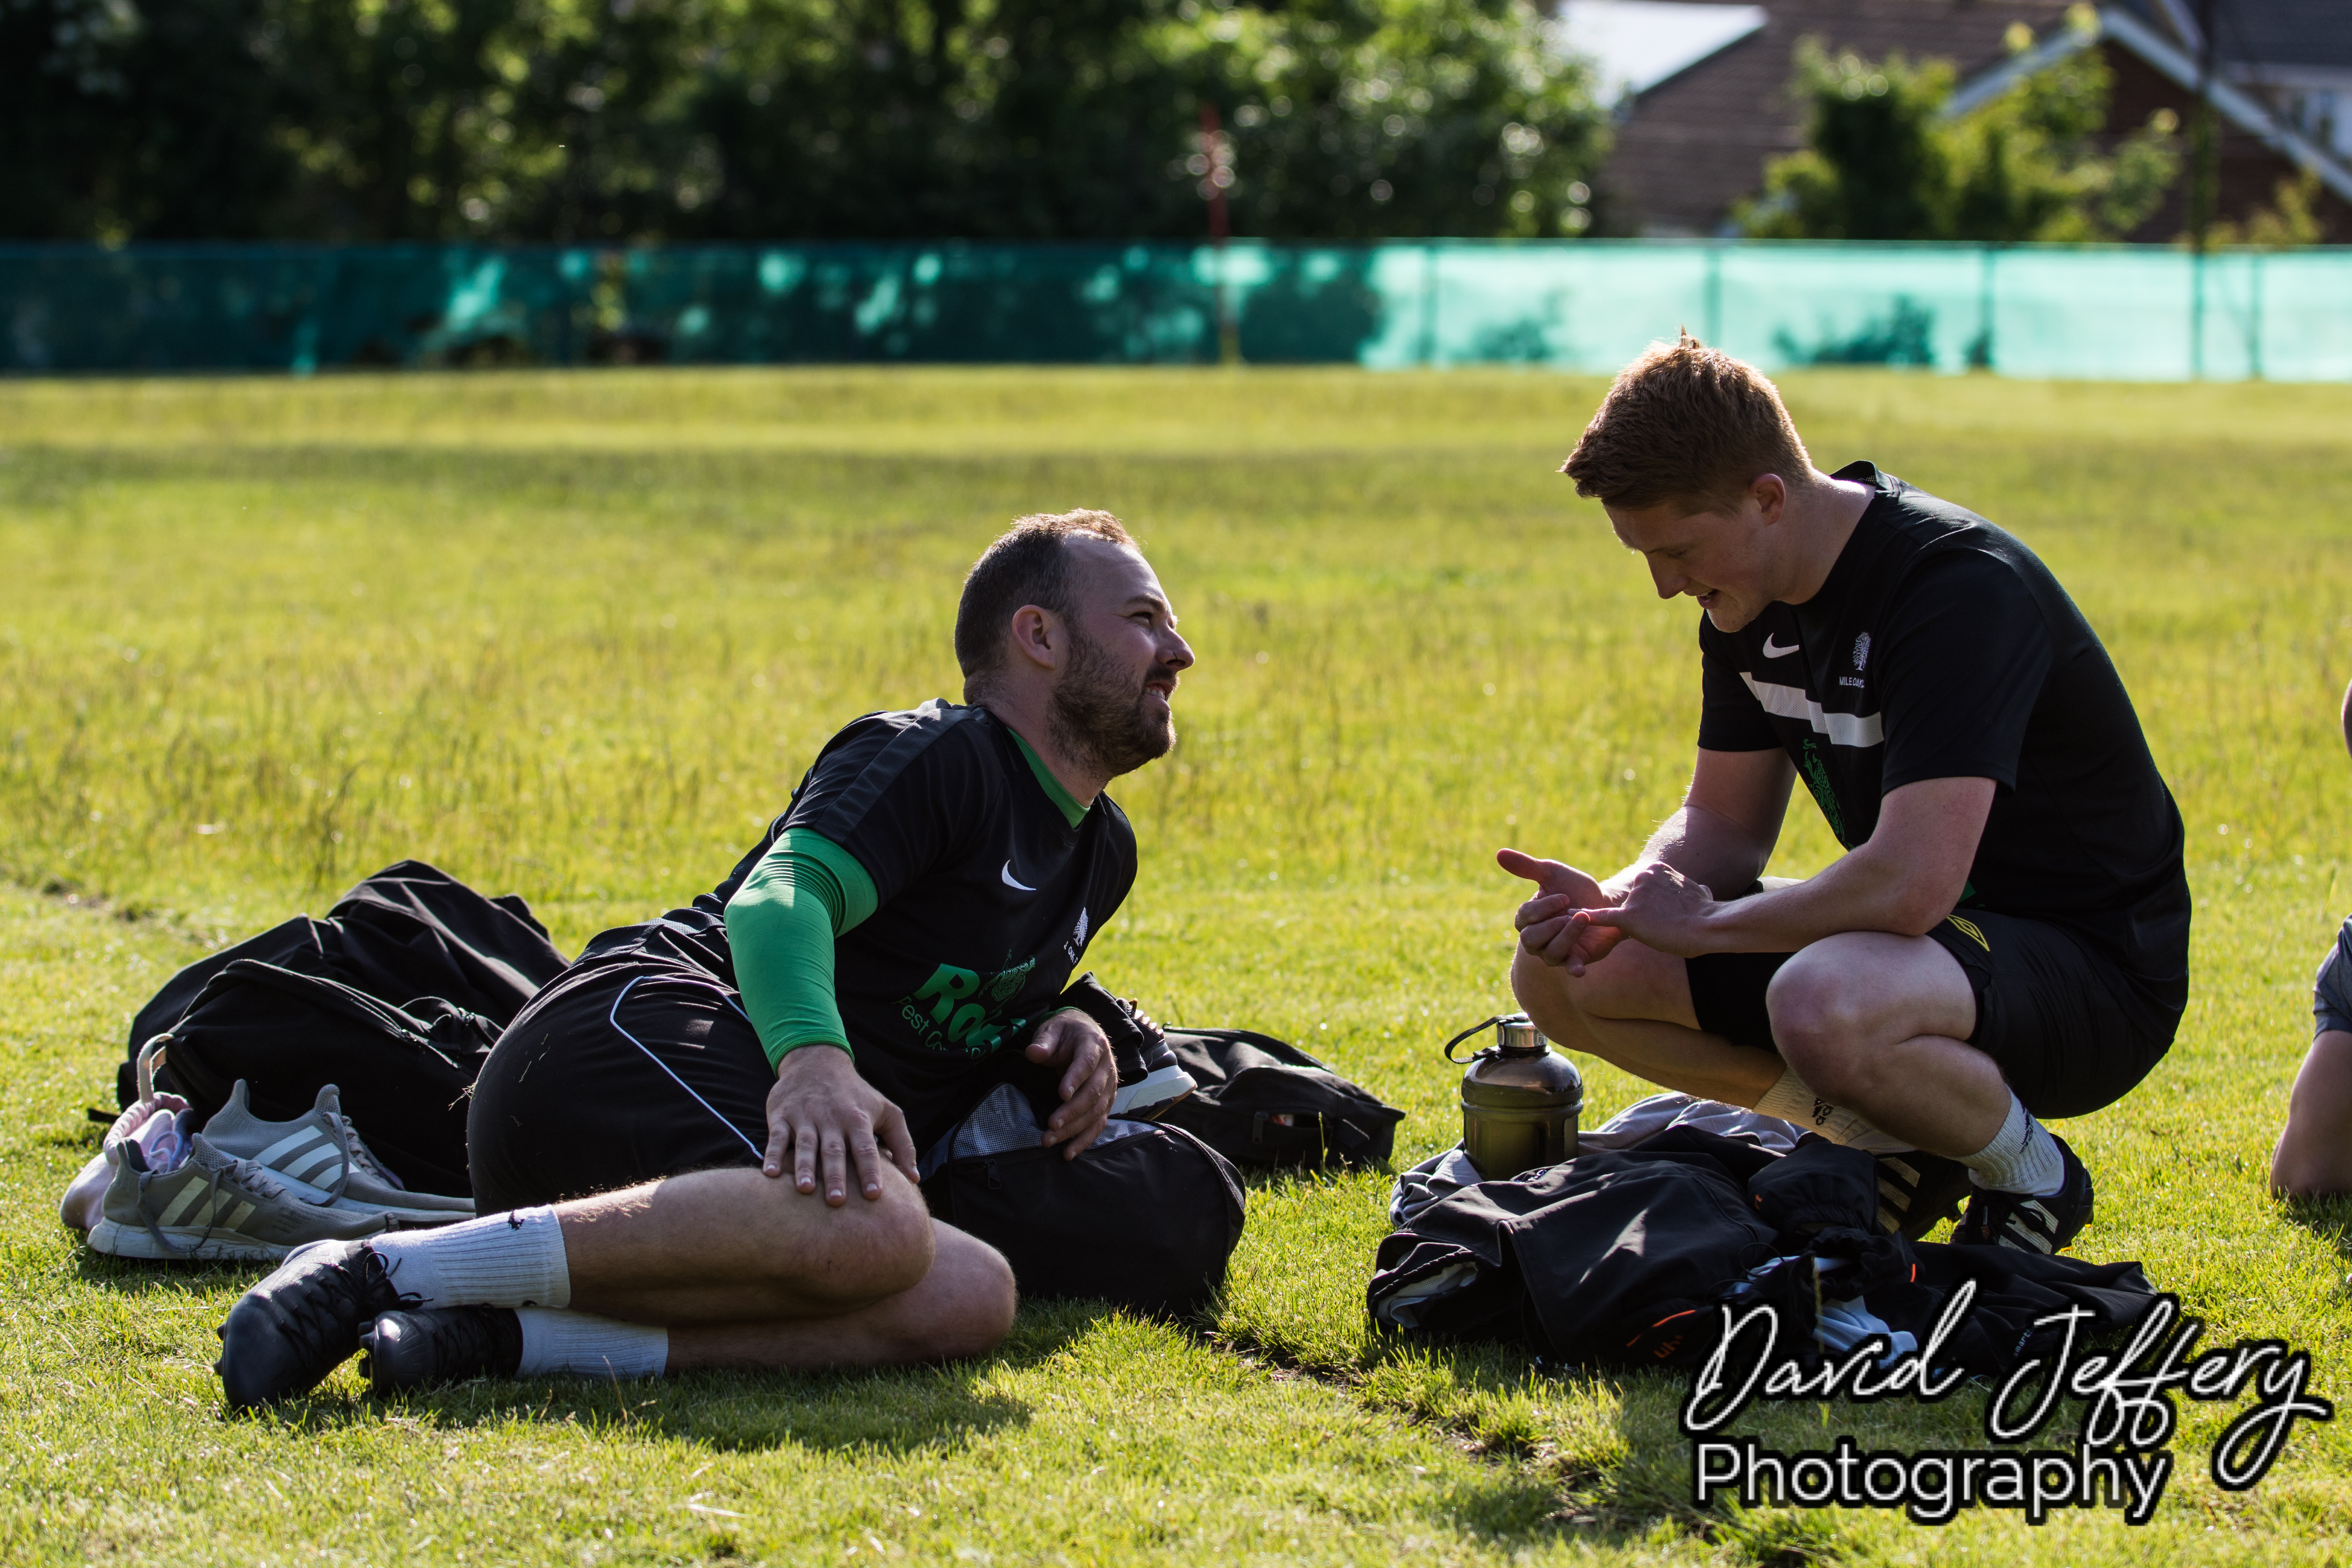 001 MOFC First Training Session 11.06